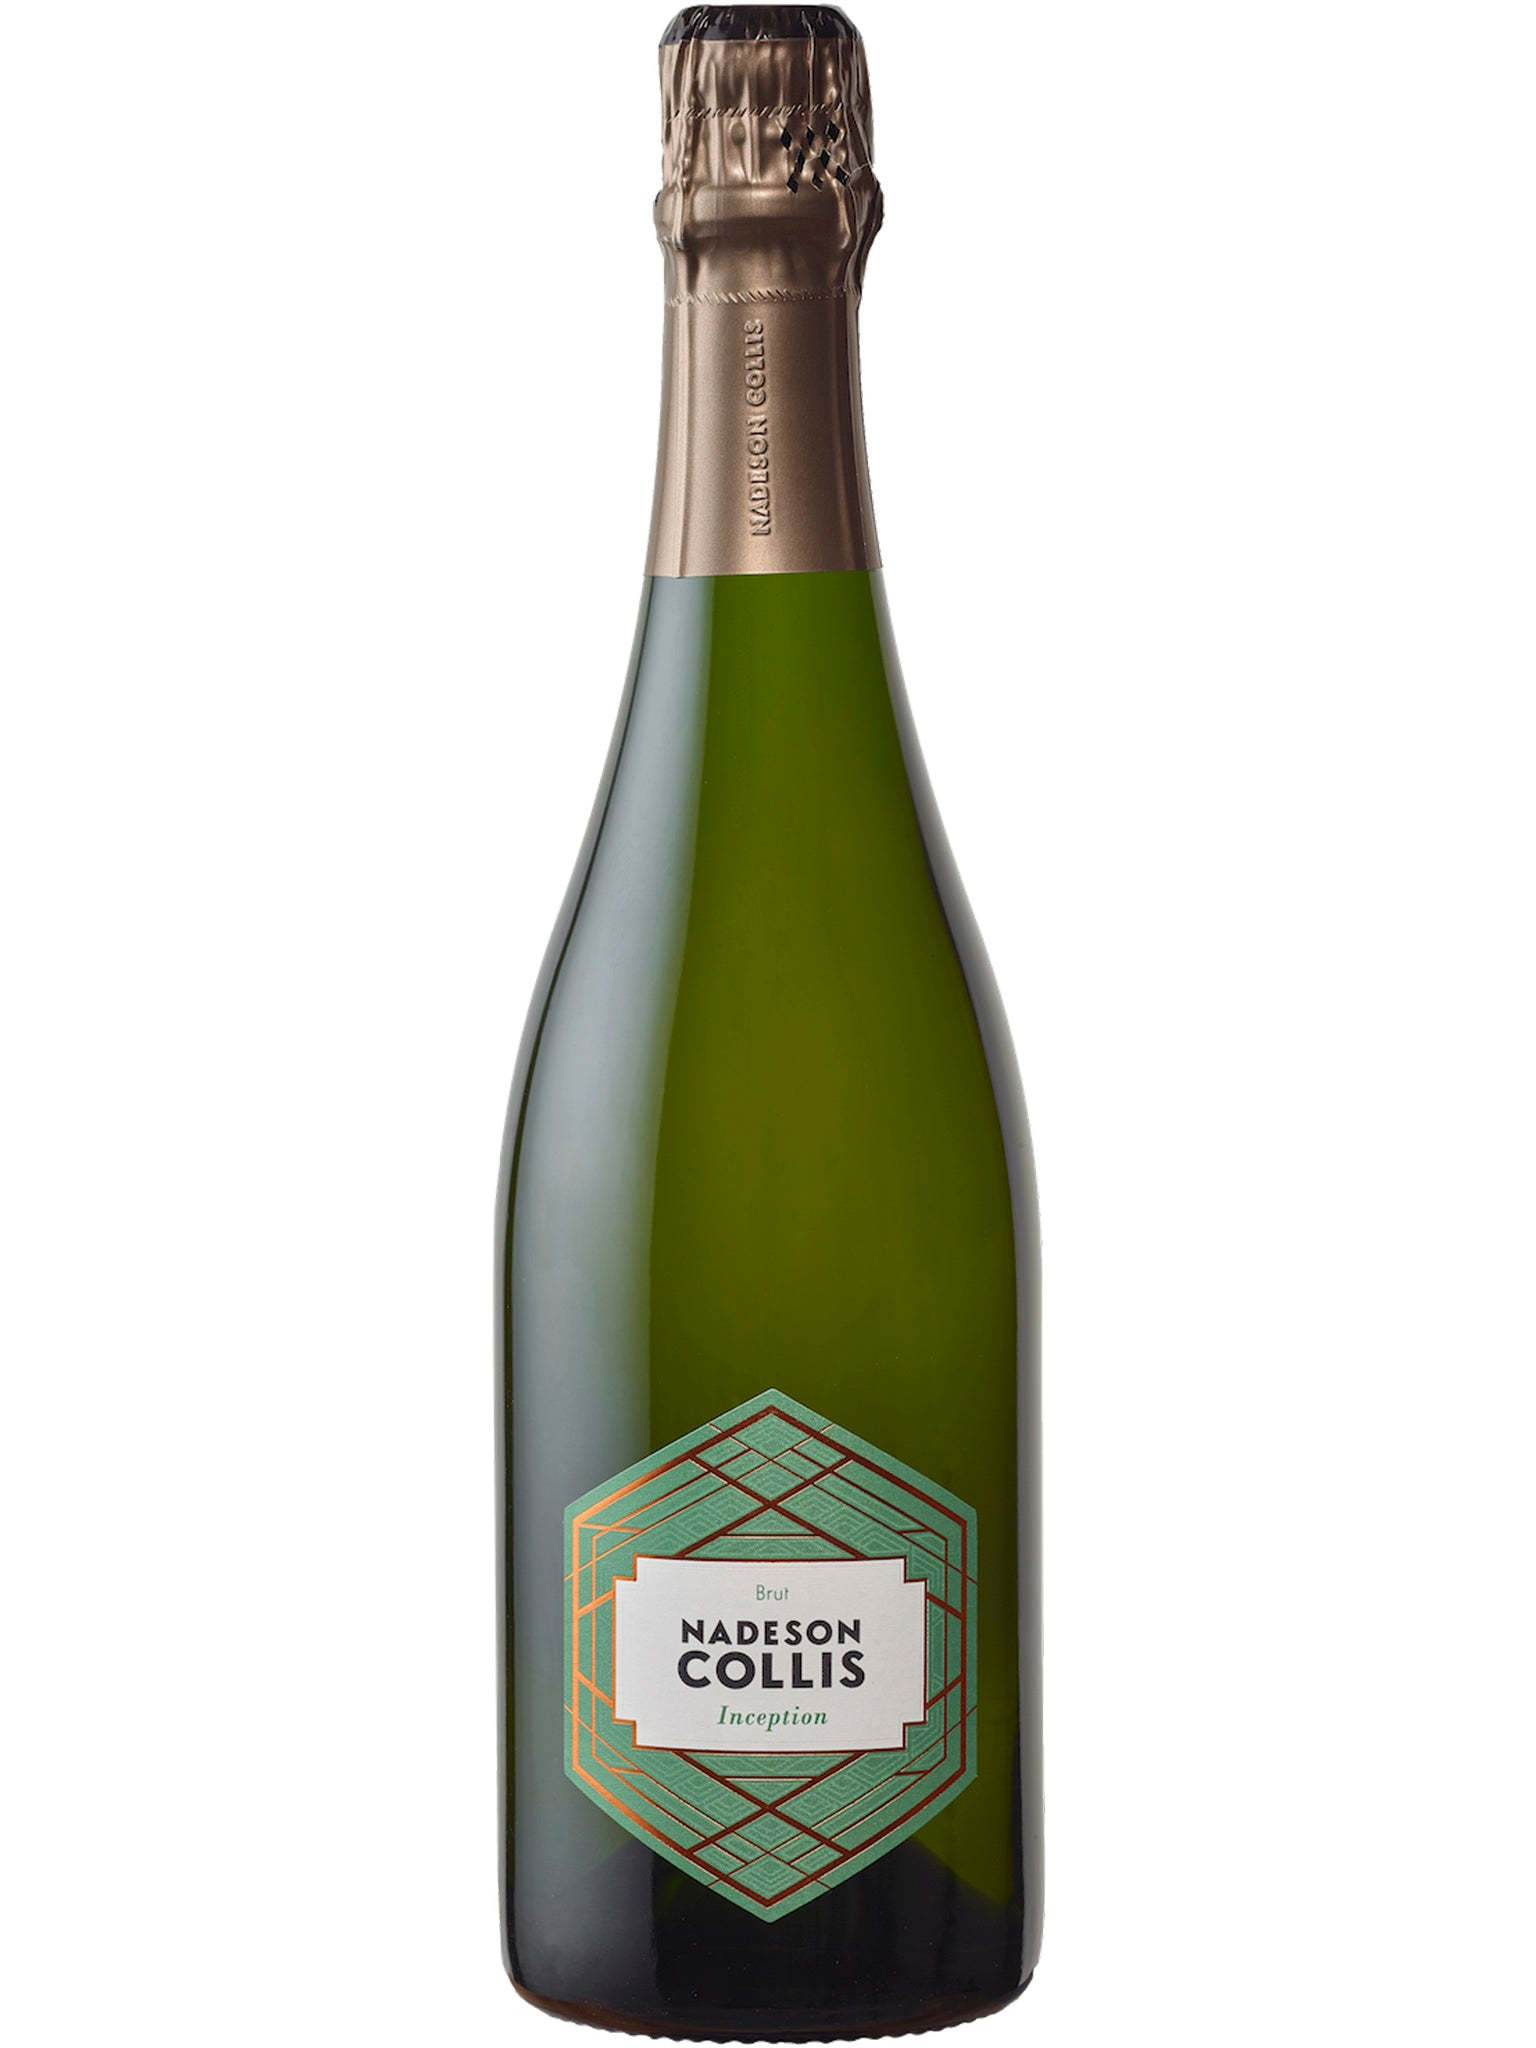 Nadeson Collis Inception Brut 6Pk NV